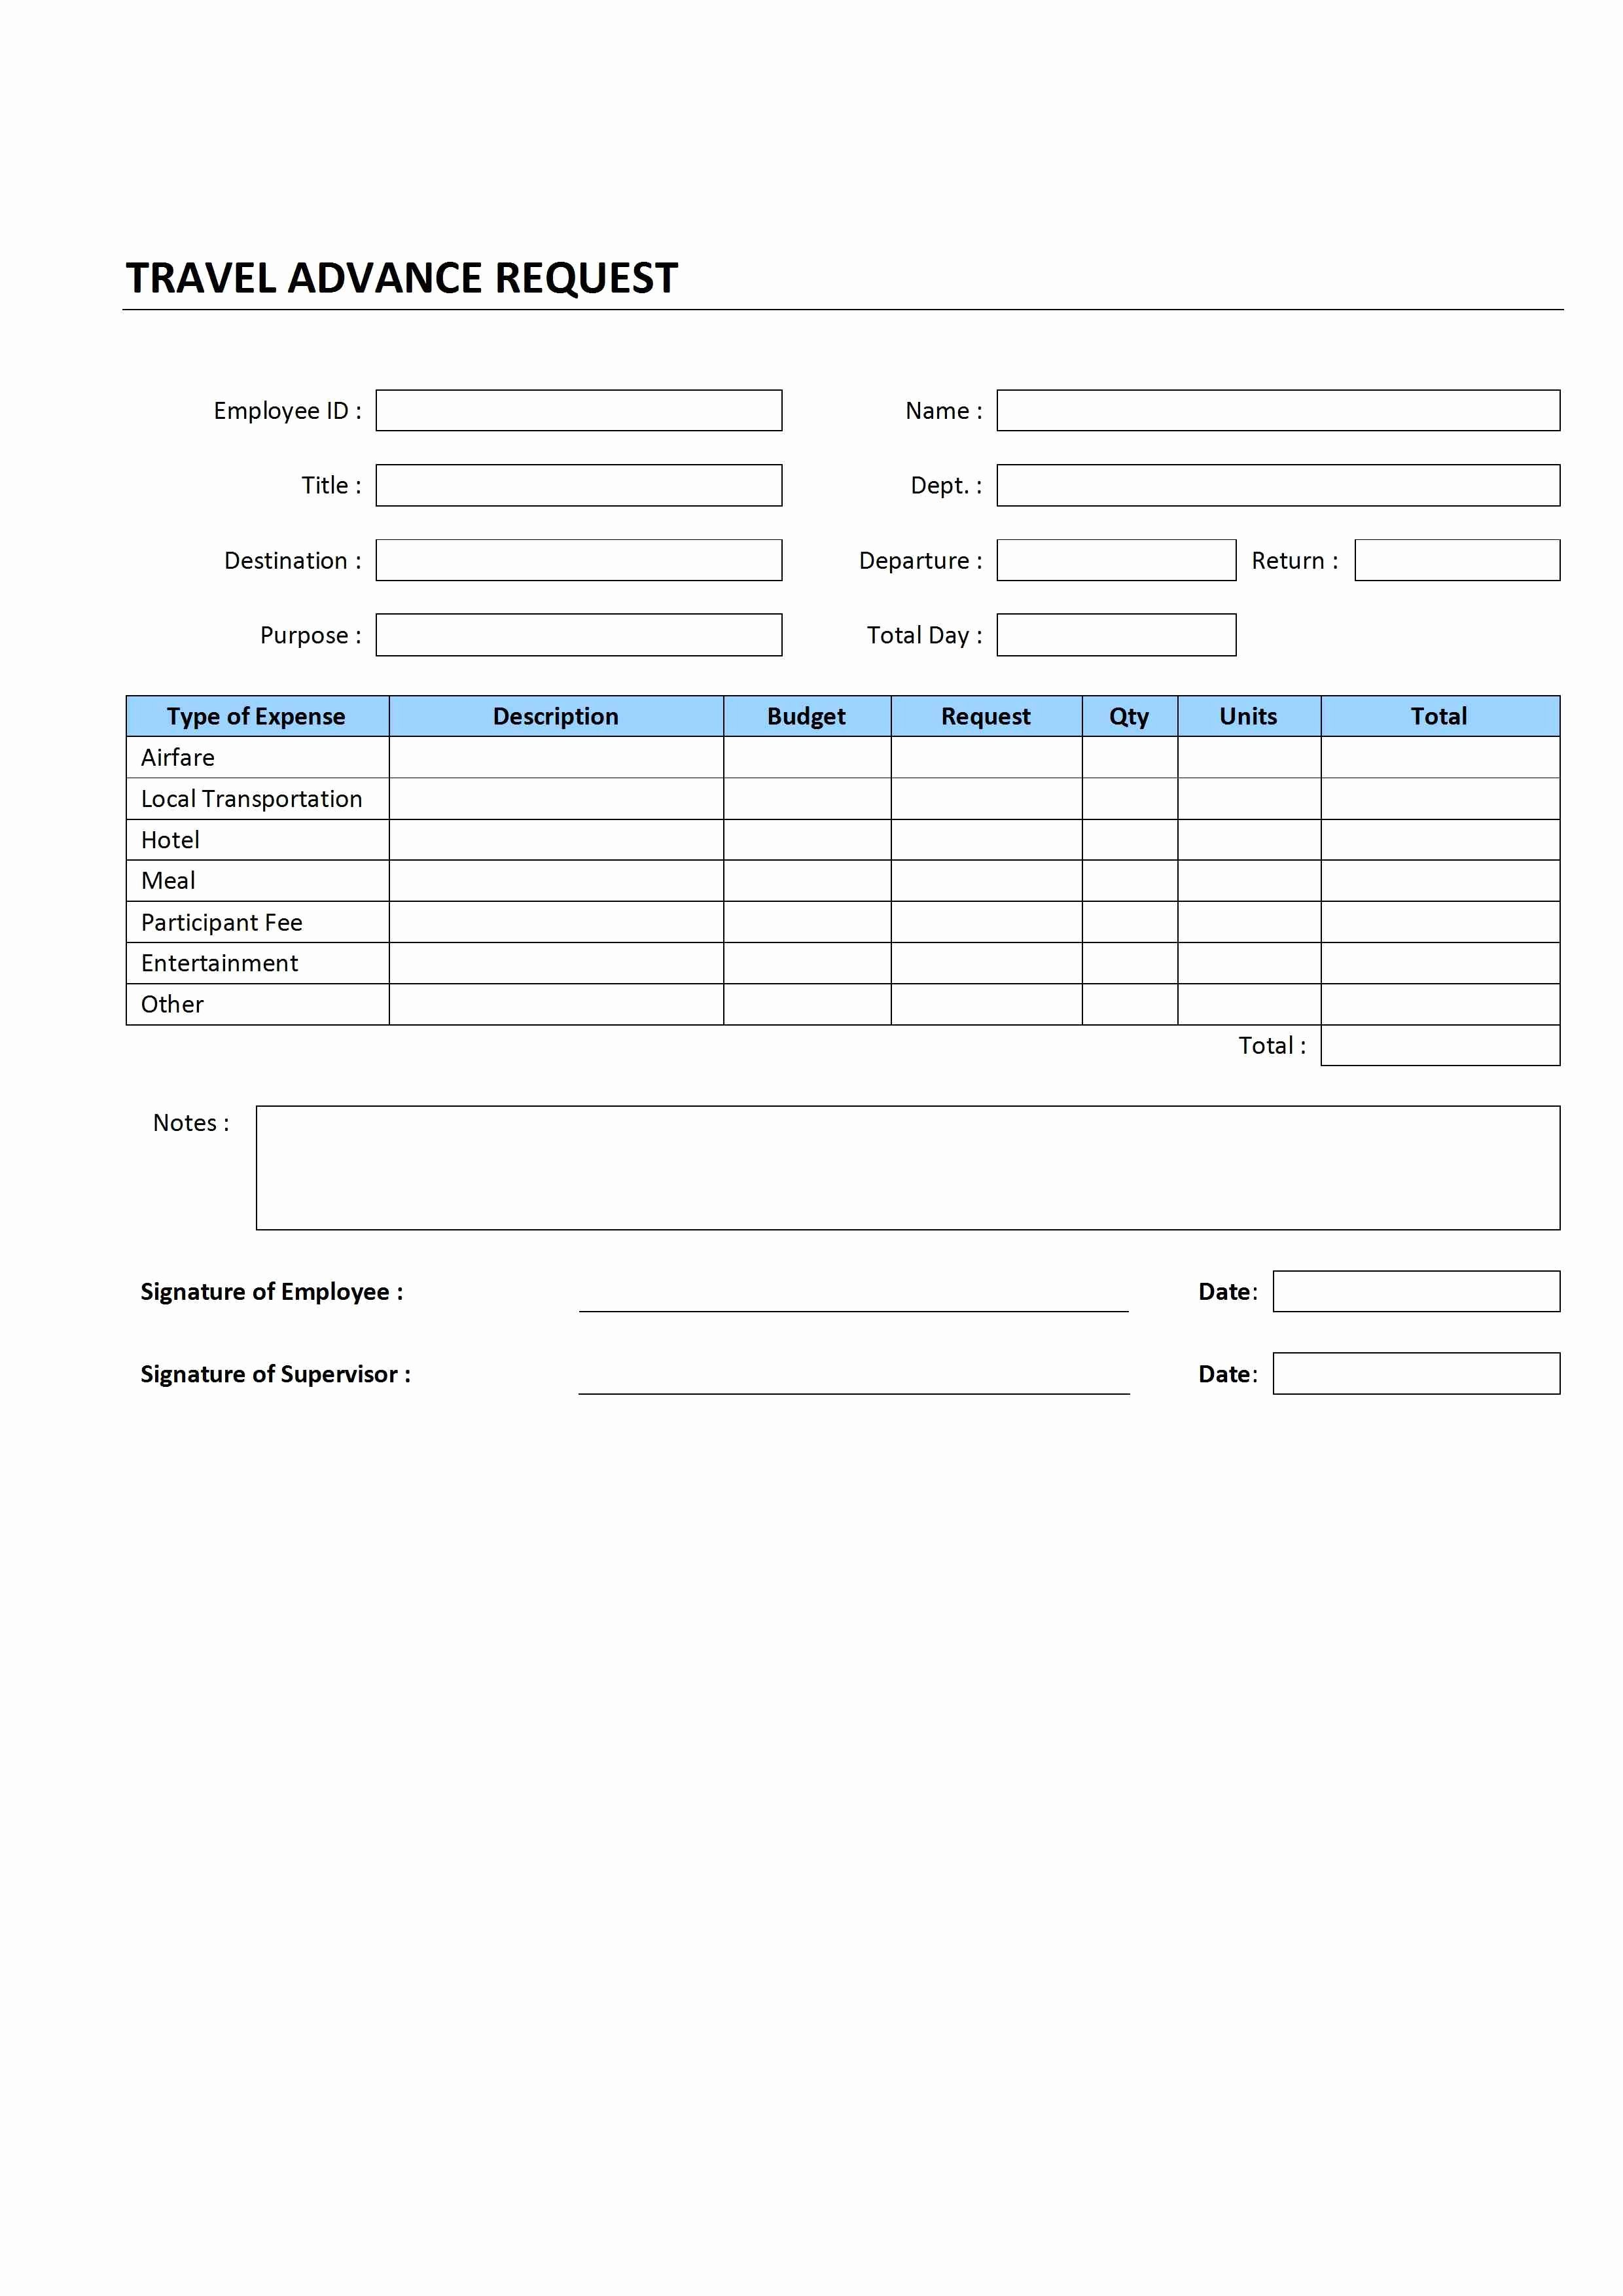 Travel Request form Template Awesome Travel Advance Request